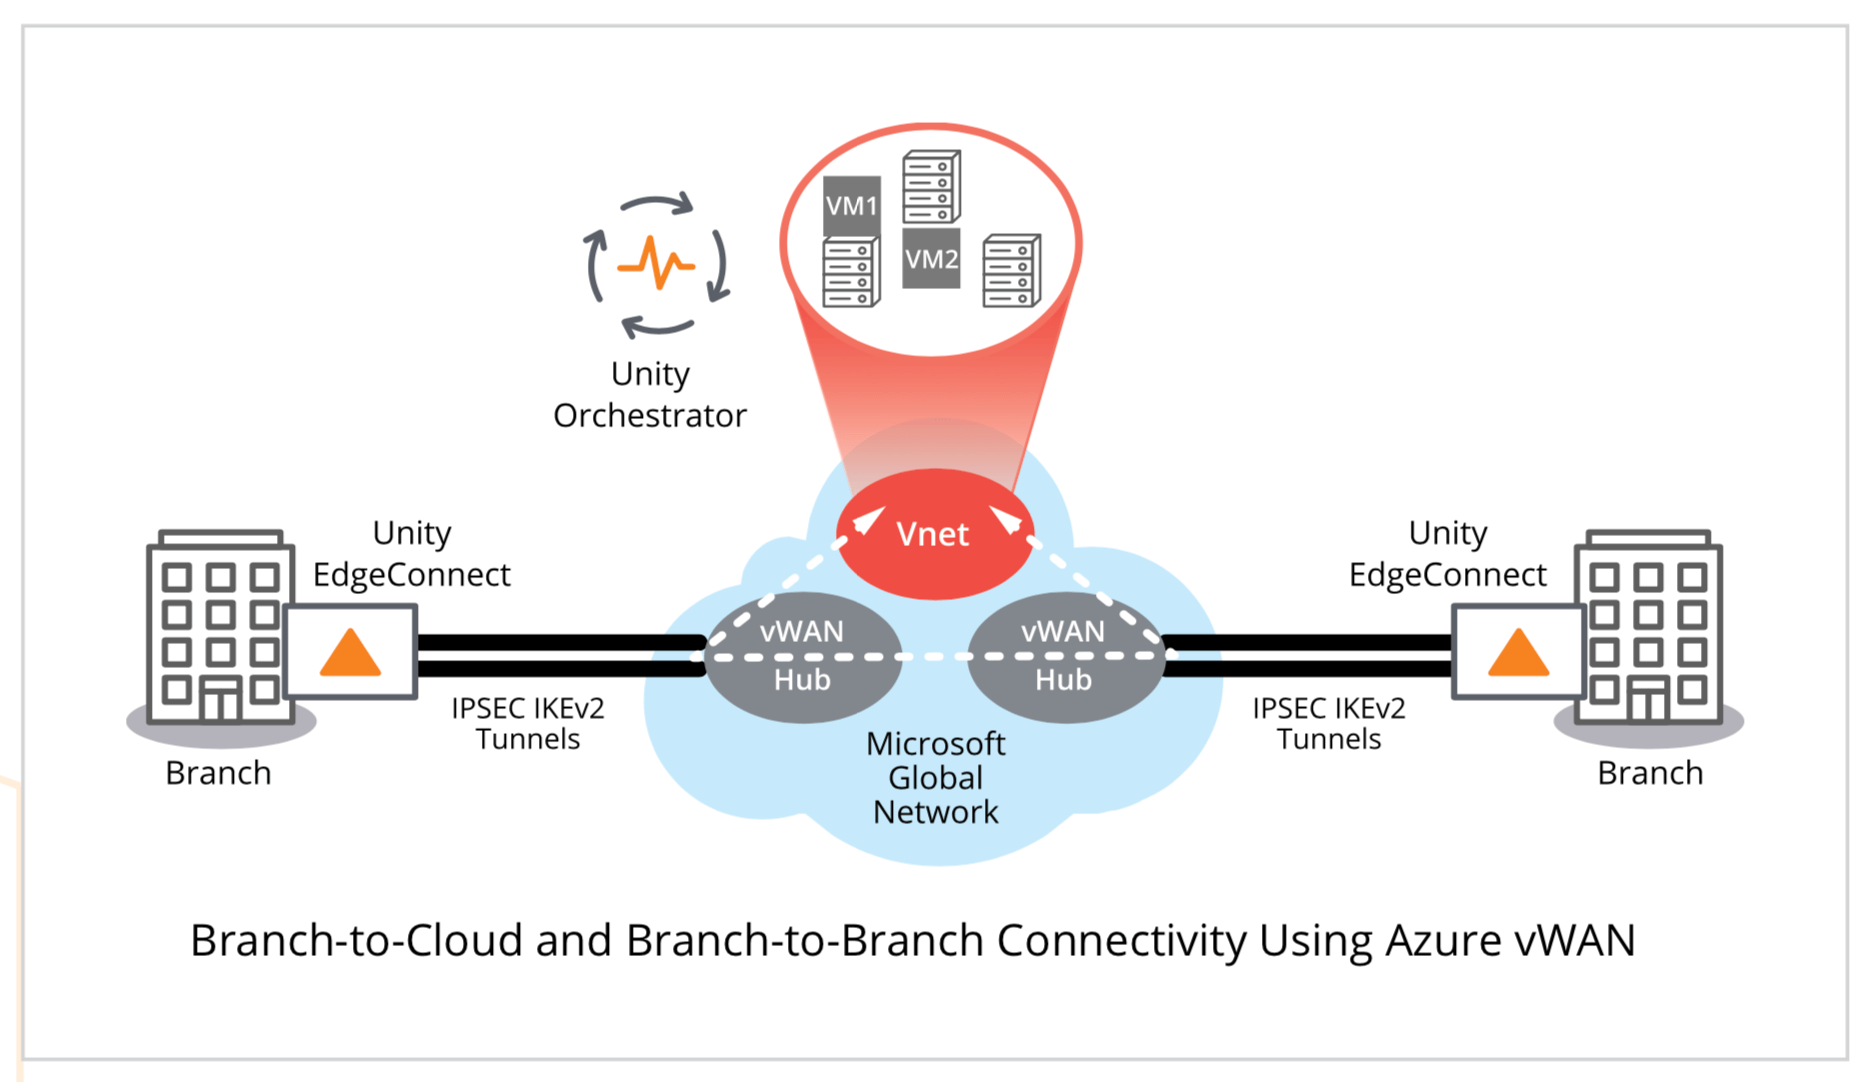 Branch-to-Cloud and Branch-to-Branch Connectivity Using Azure vWAN